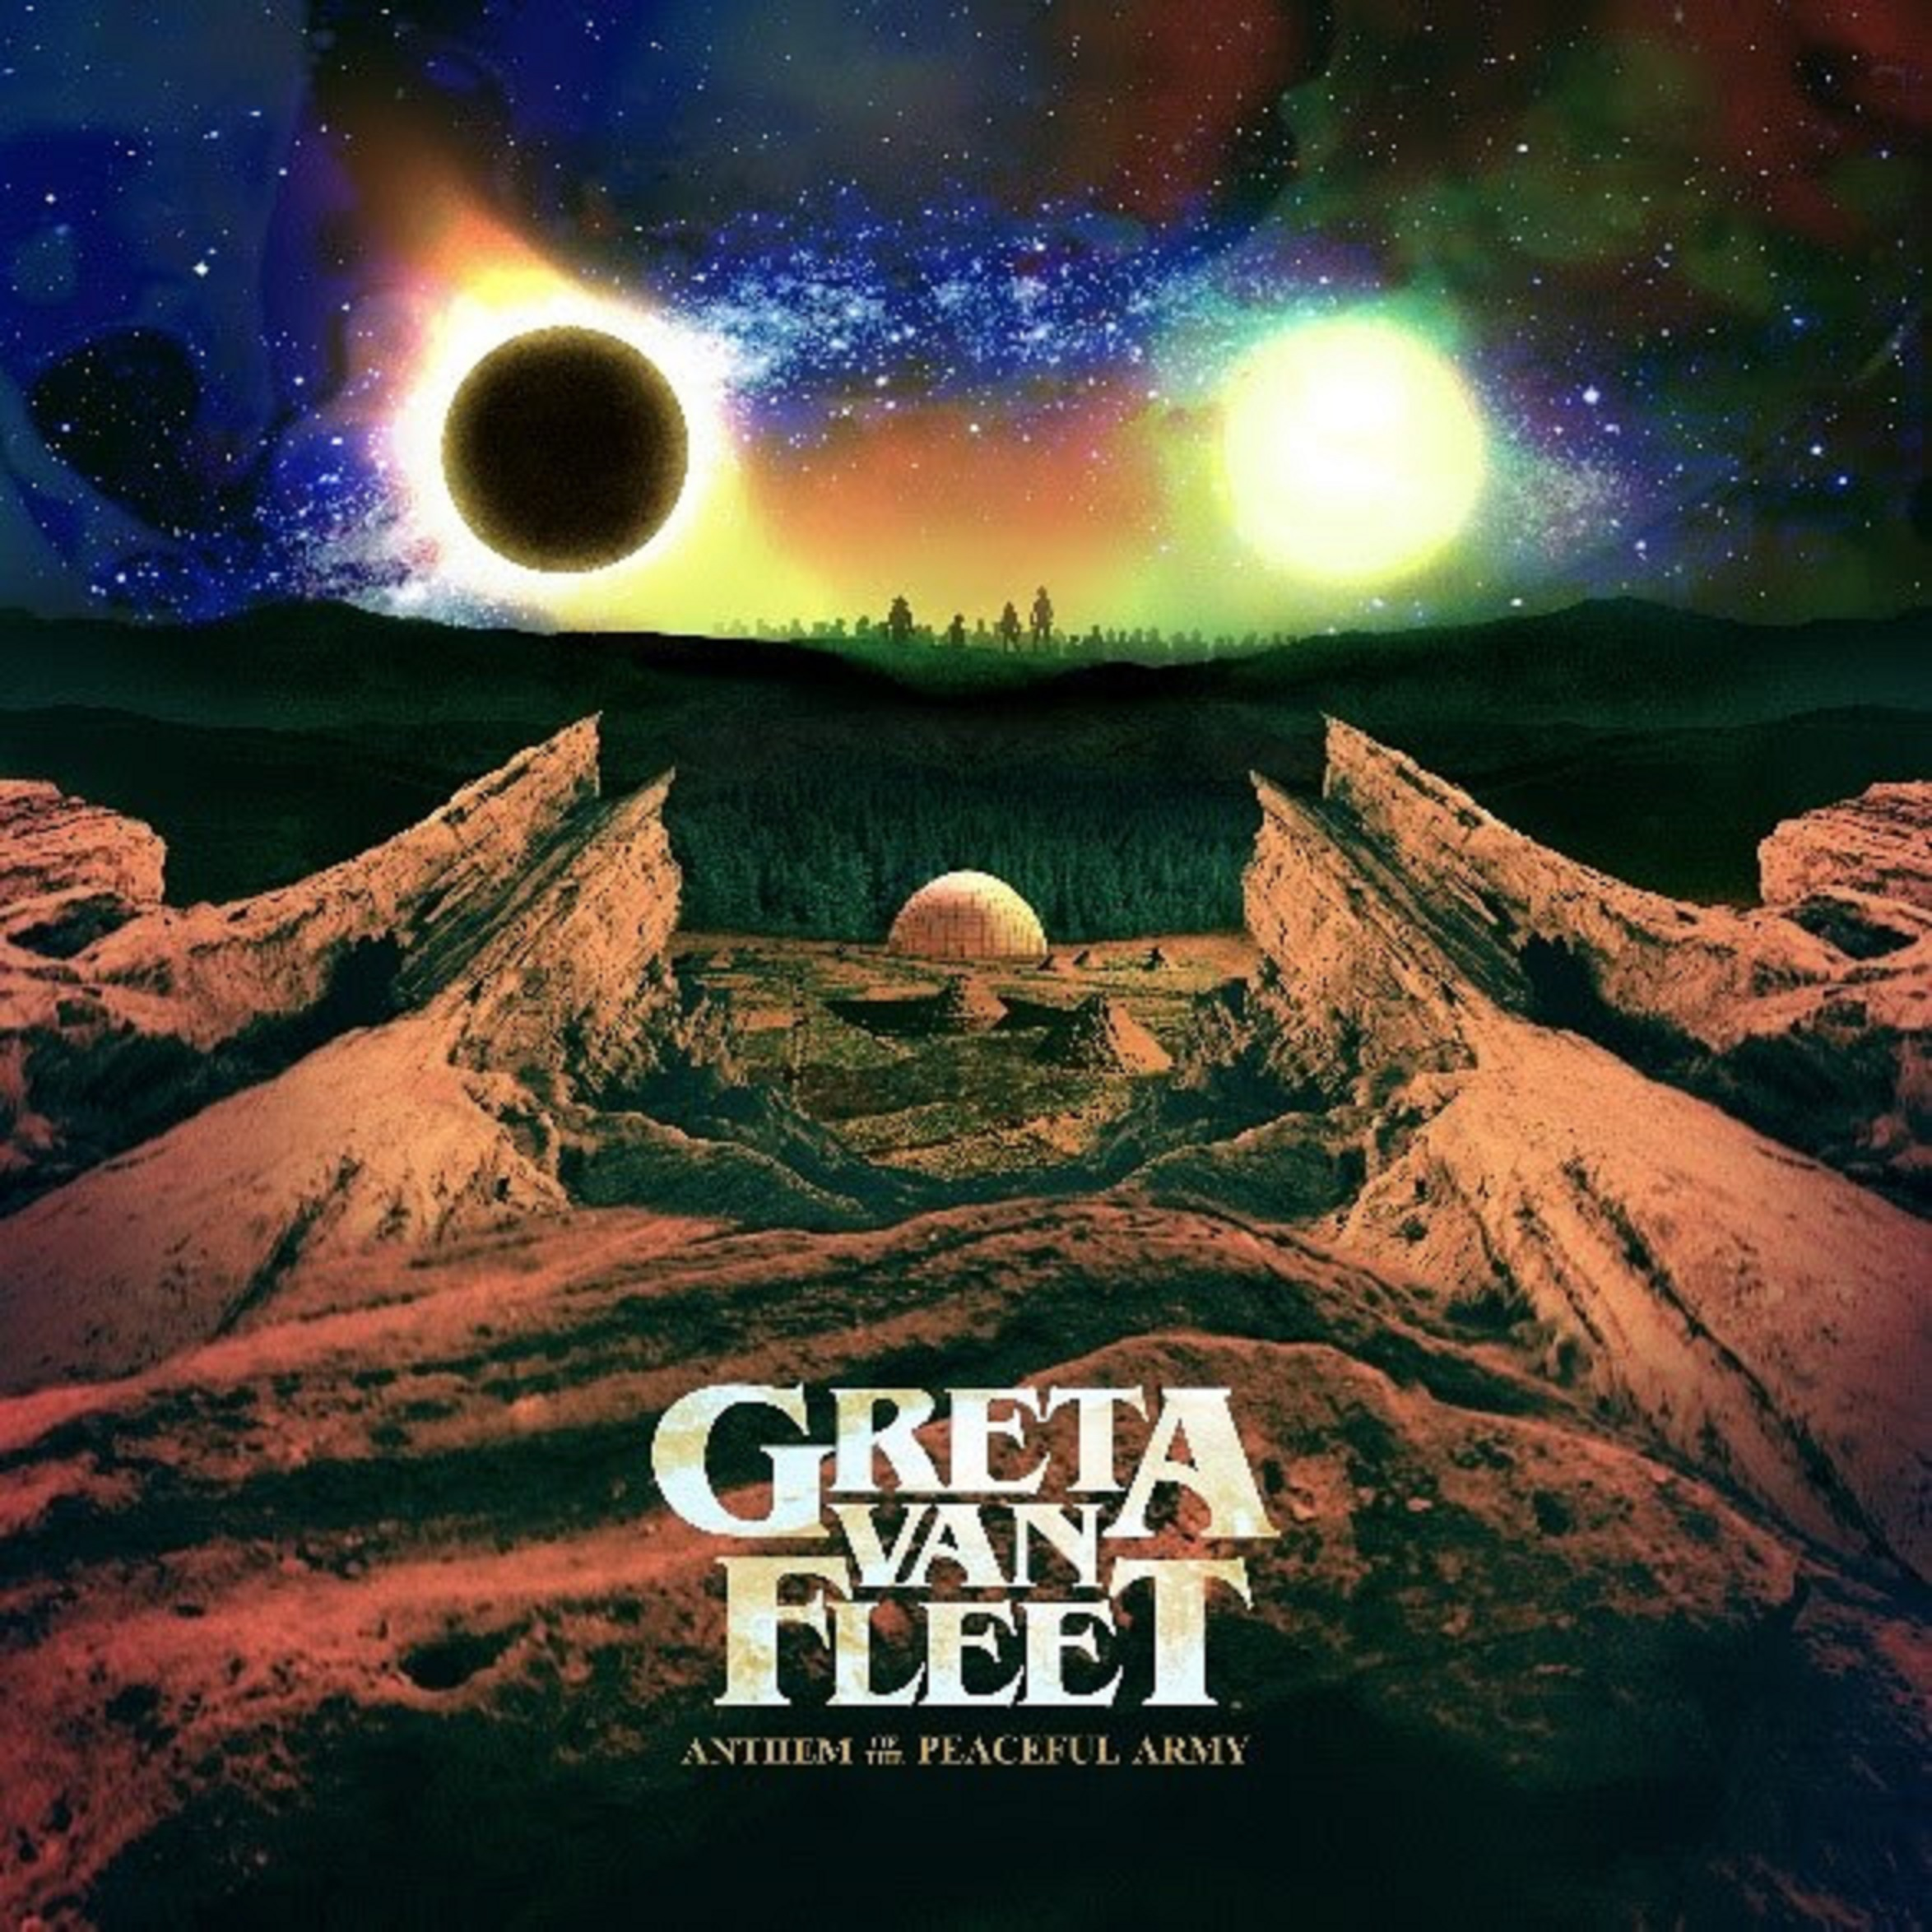 Greta Van Fleet enters the Billboard Top Album Sales chart at #1